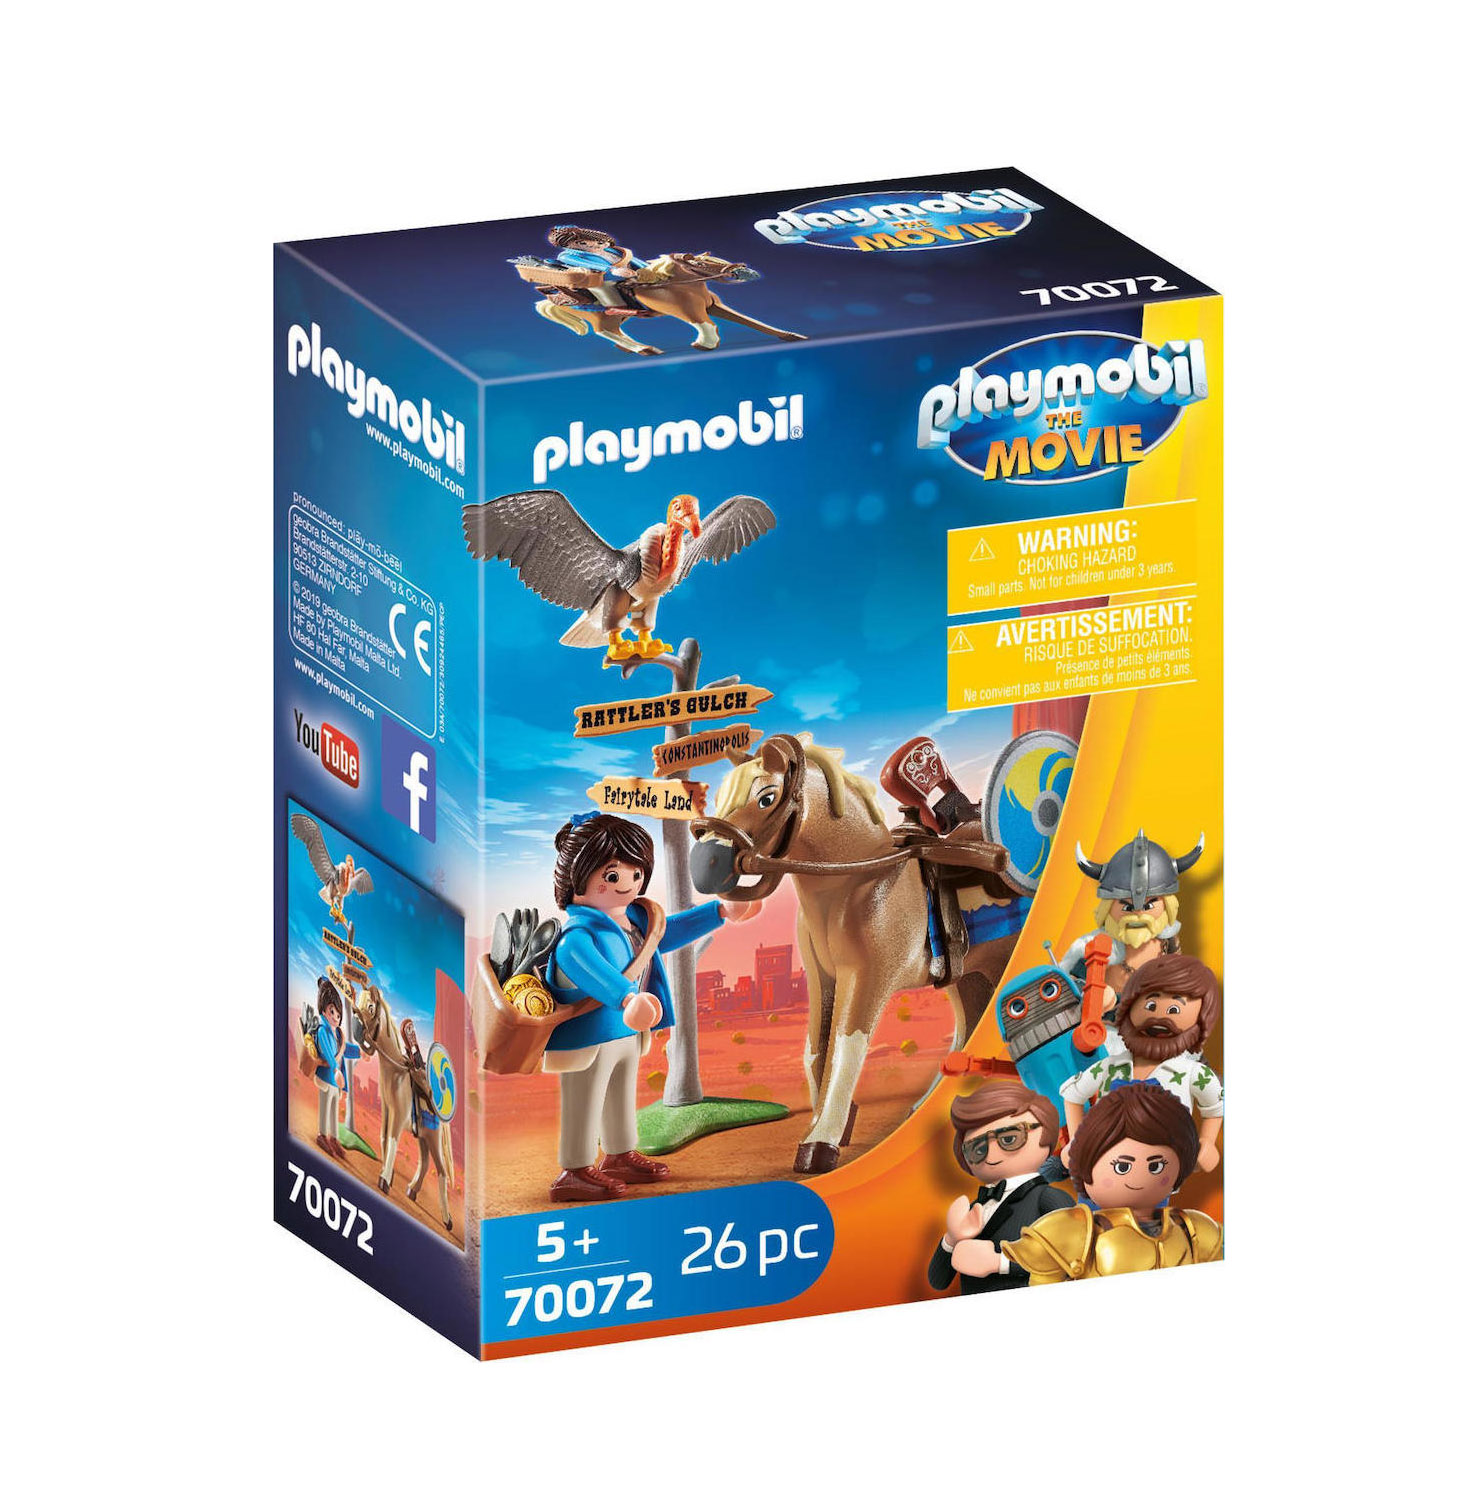 Playmobil The Movie: Marla with Horse 70072